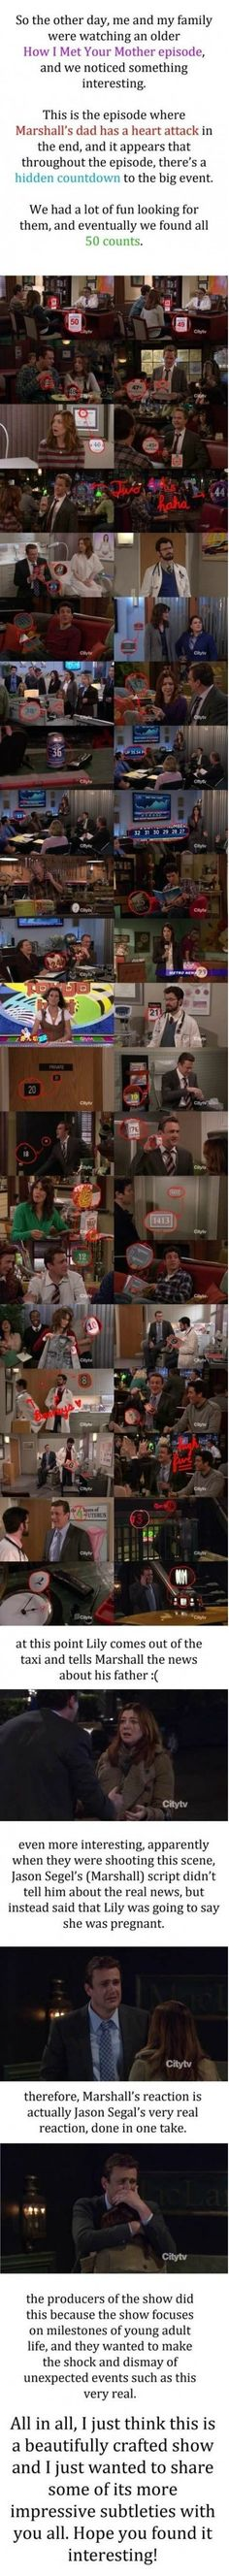 Hidden Countdown in How I Met Your Mother- not sure if repost just let me know - Imgur